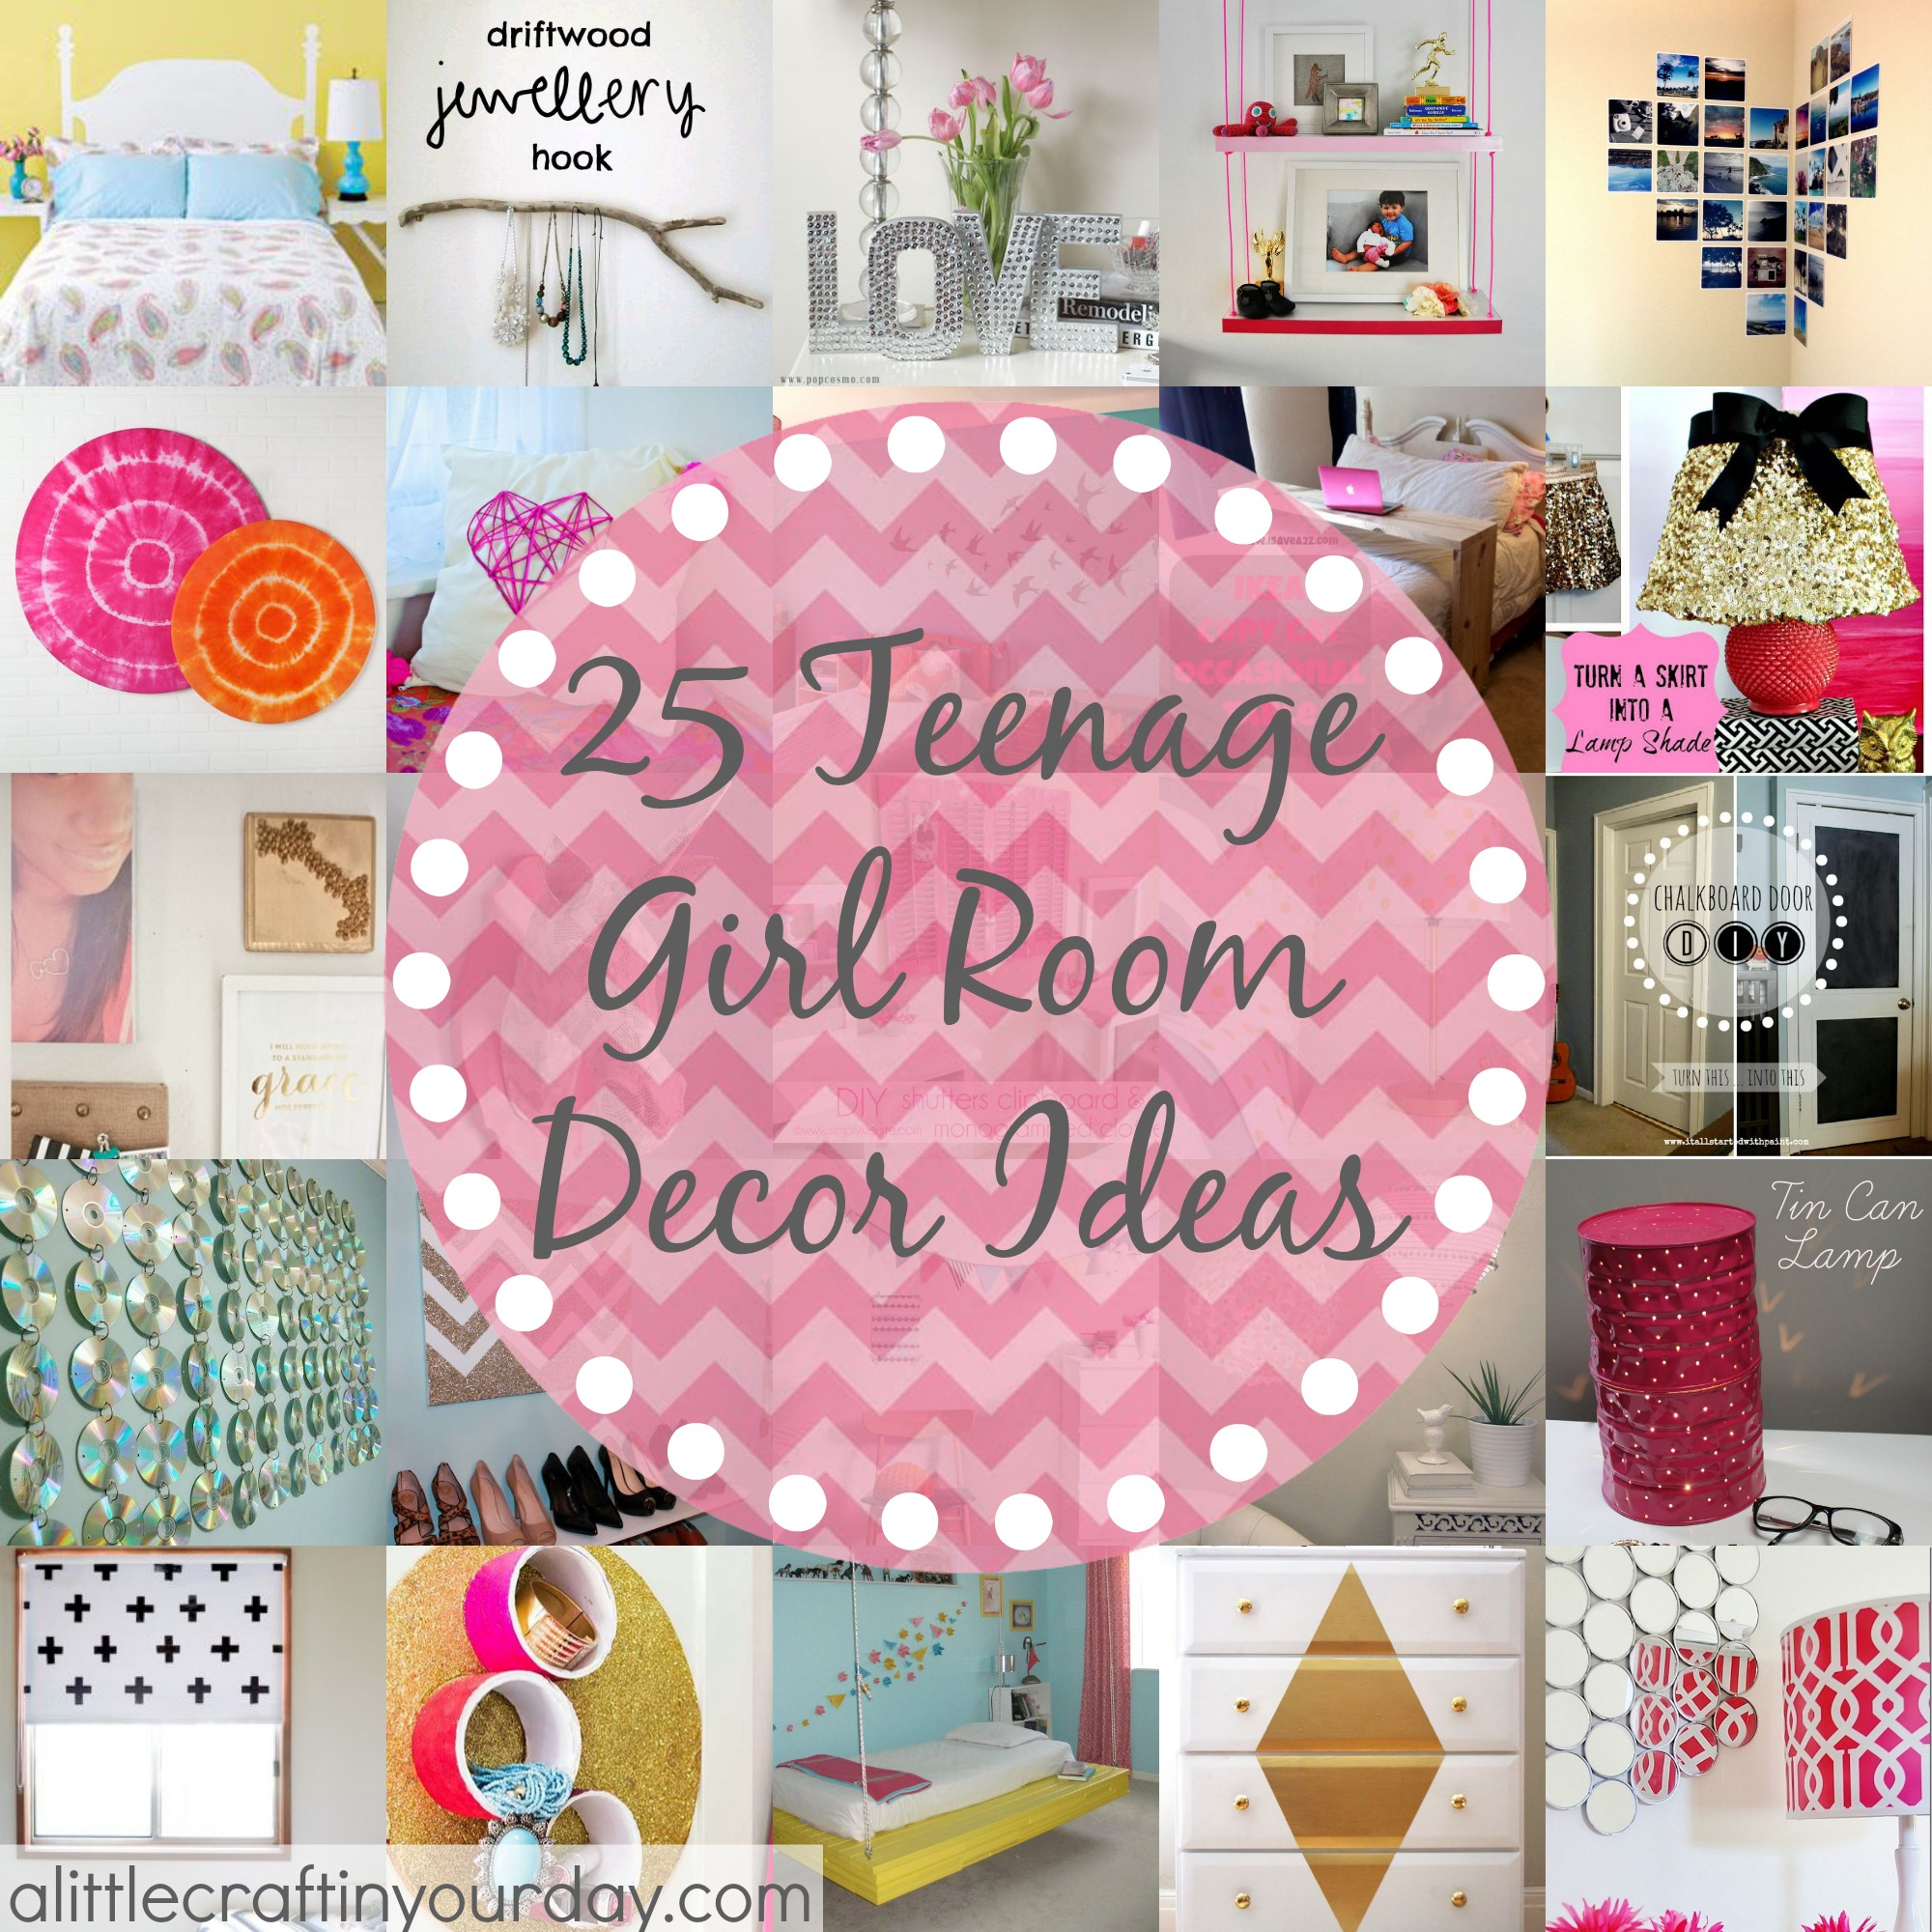 Decorating Ideas For Teenage Rooms 25 more teenage girl room decor ideas - a little craft in your day